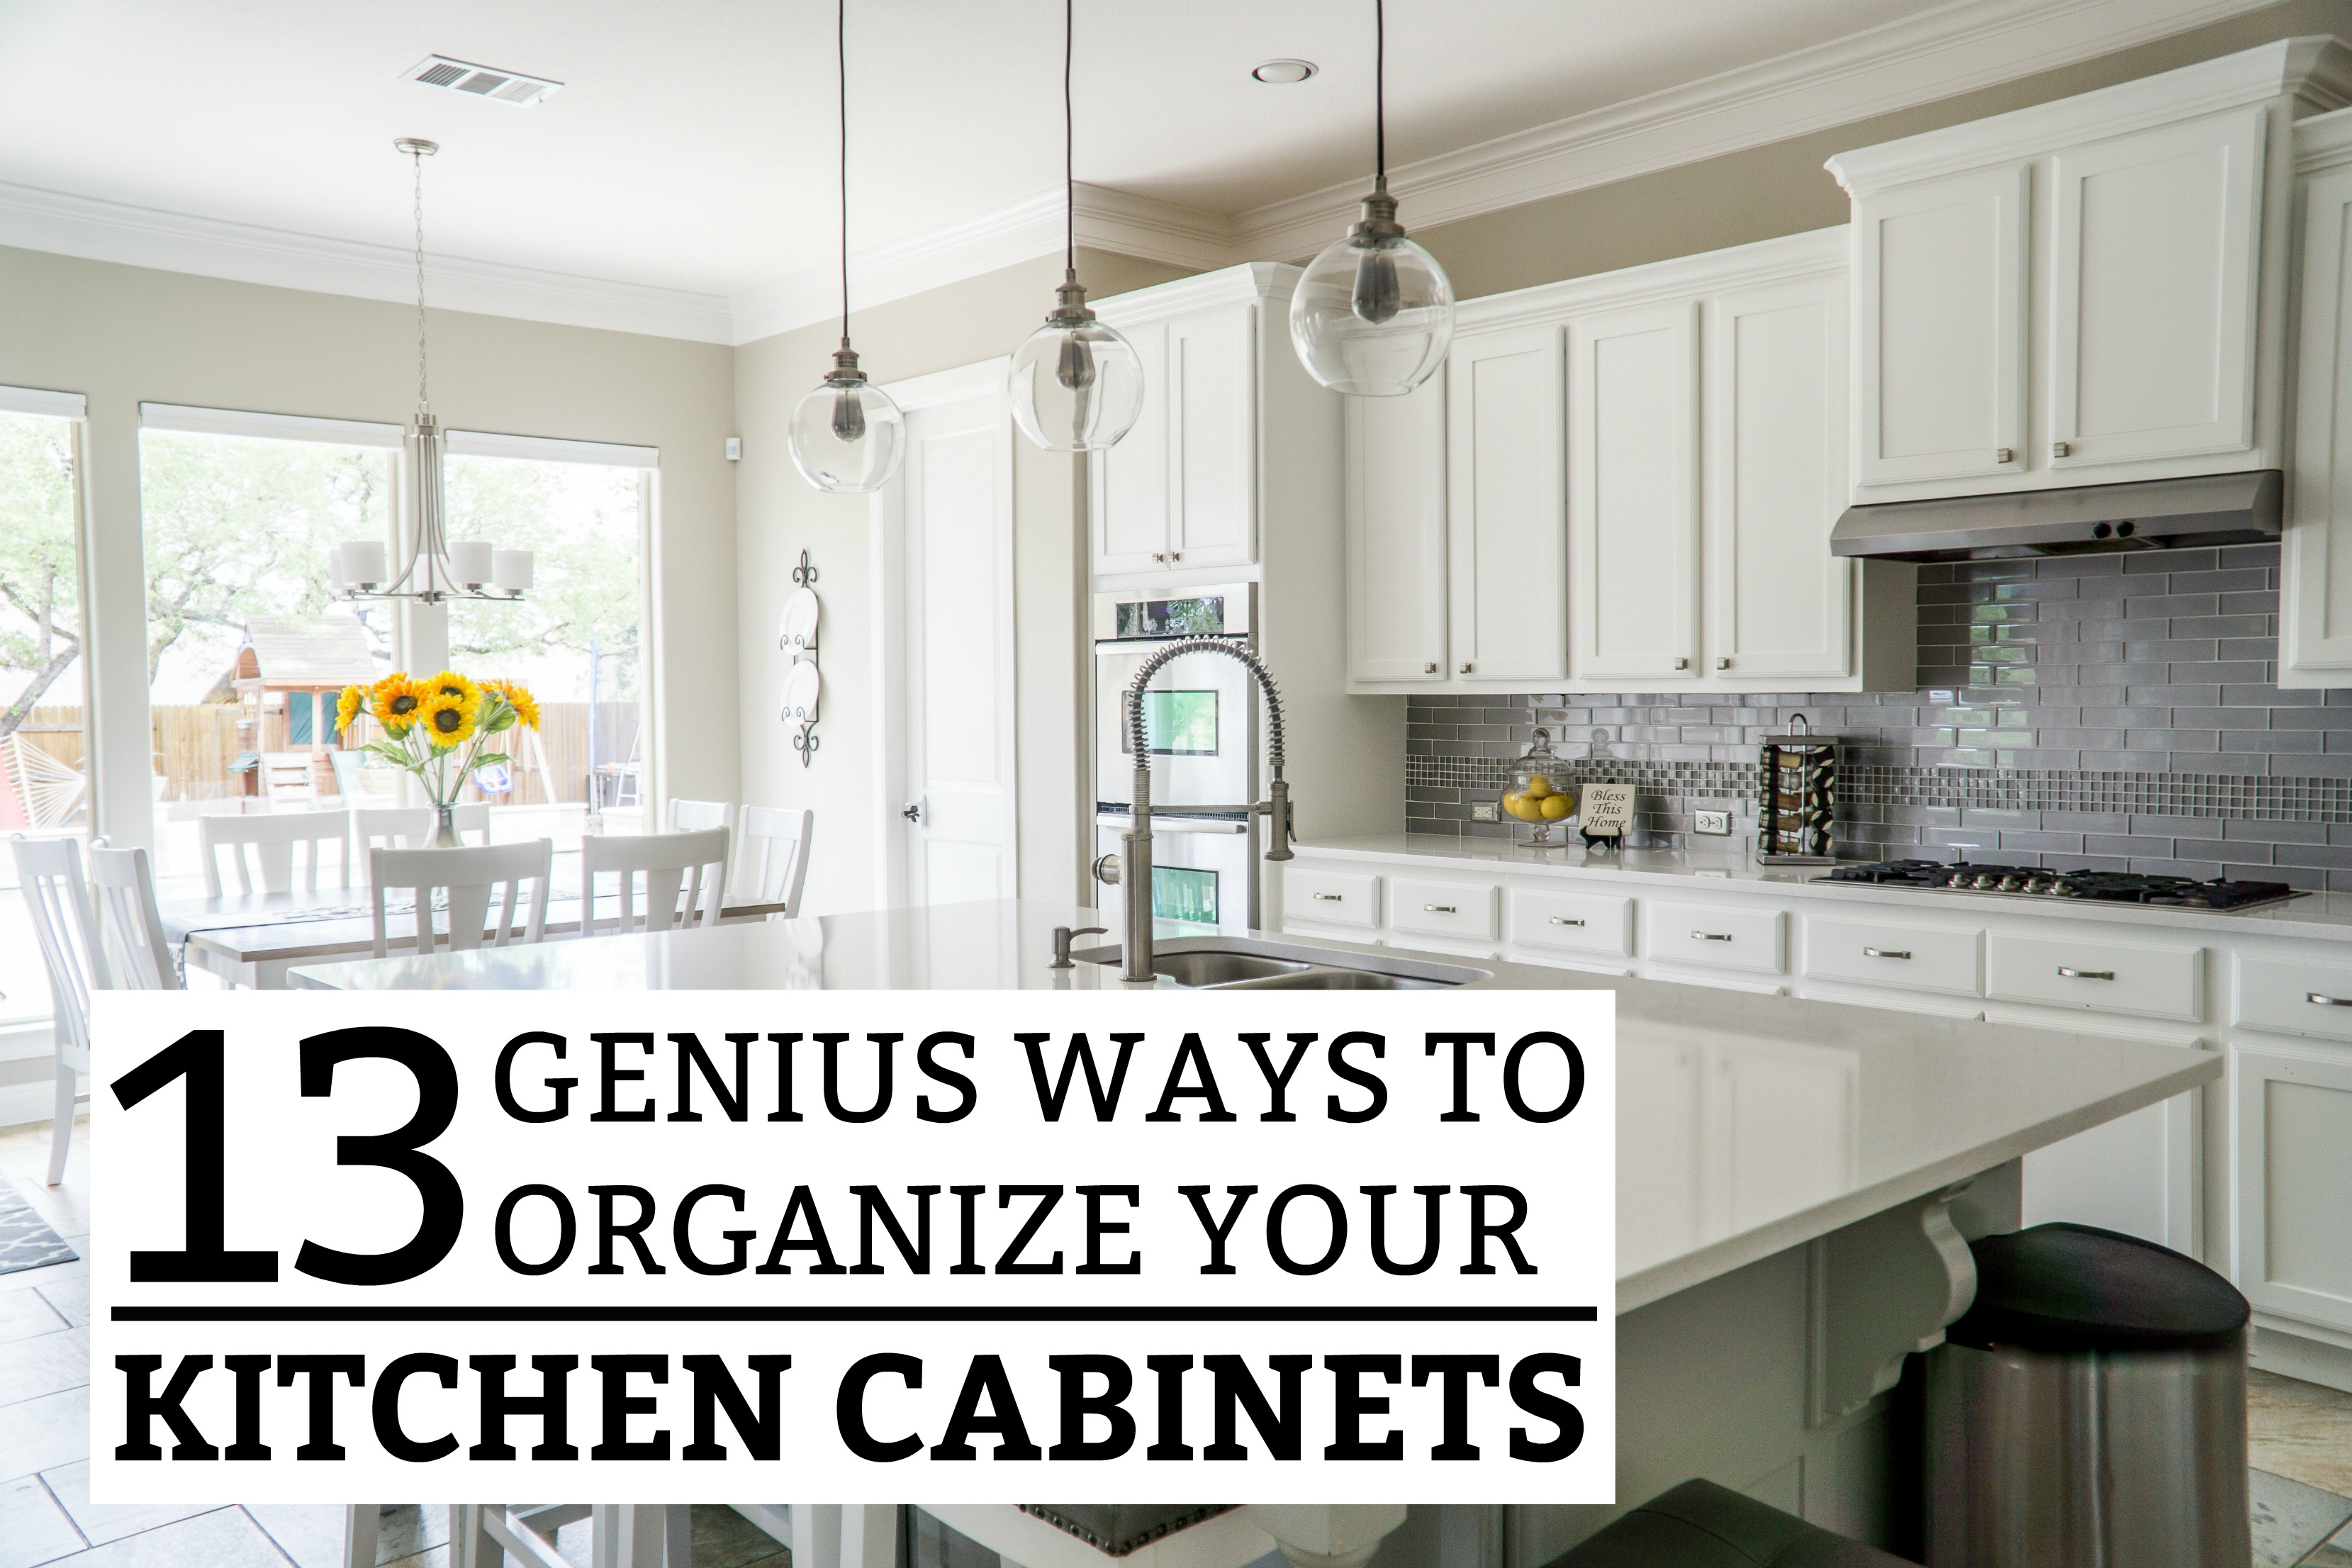 Brilliant 13 Genius Ways To Organize Your Kitchen Cabinets Download Free Architecture Designs Scobabritishbridgeorg